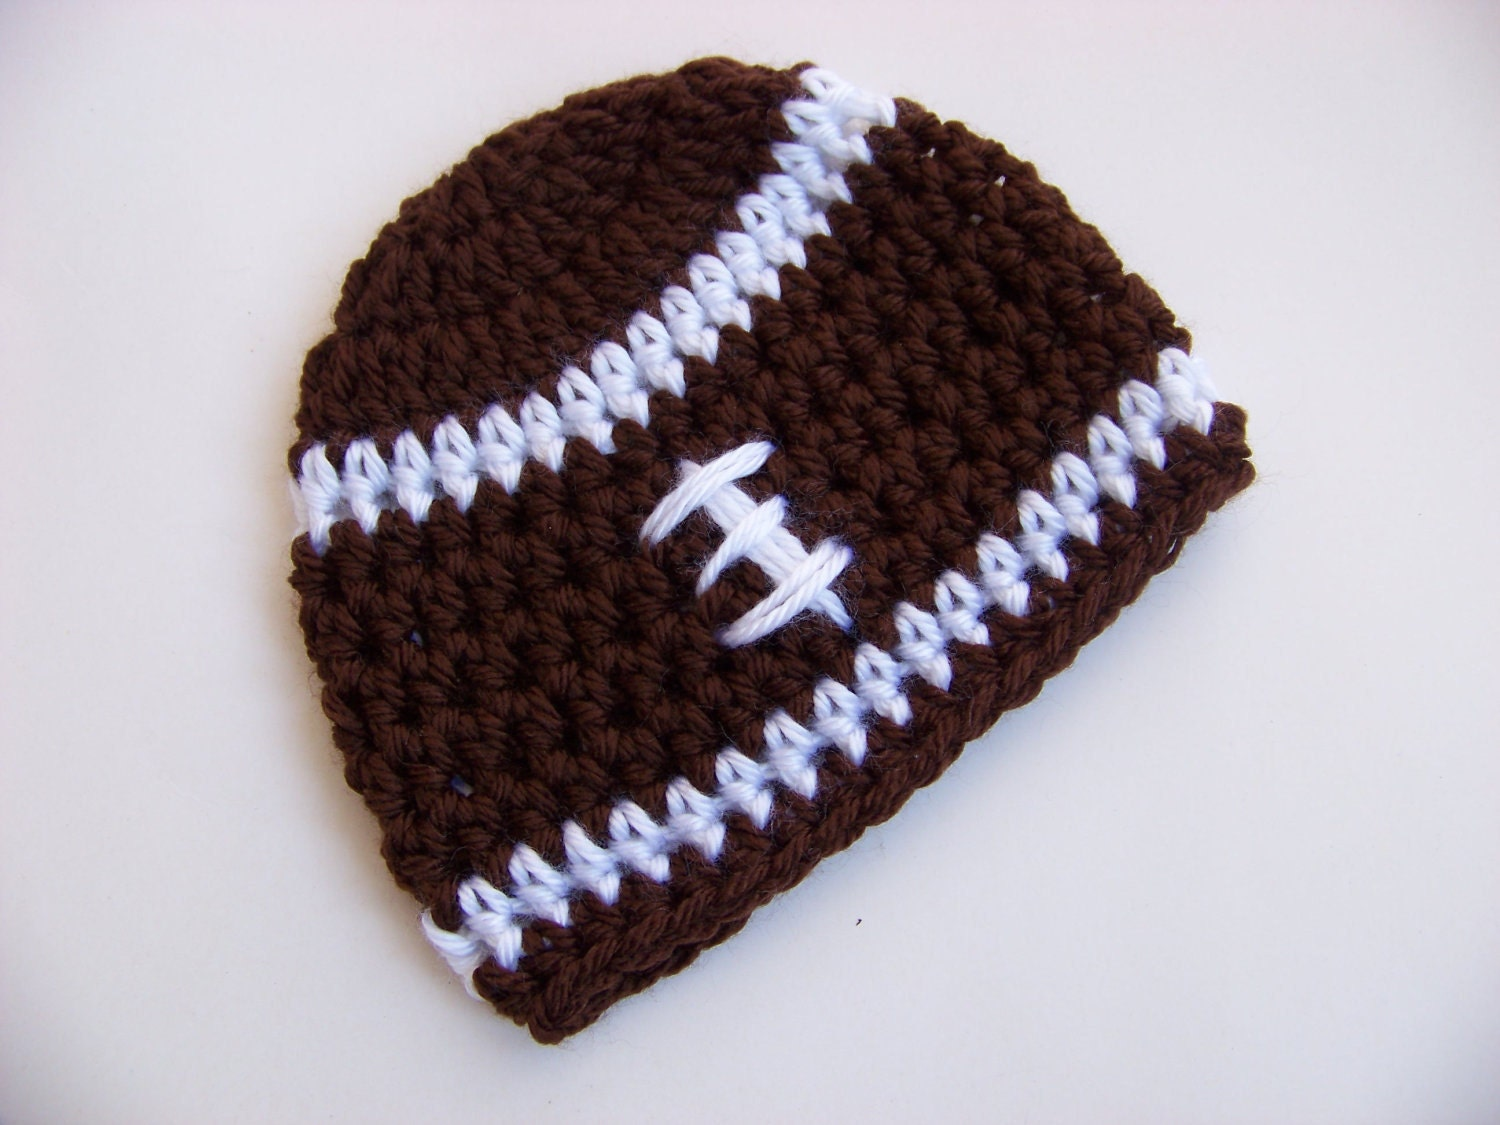 Free crochet pattern for baby football hat manet for crochet baby hat football hat brown with by bellebabyboutique free crochet pattern bankloansurffo Choice Image